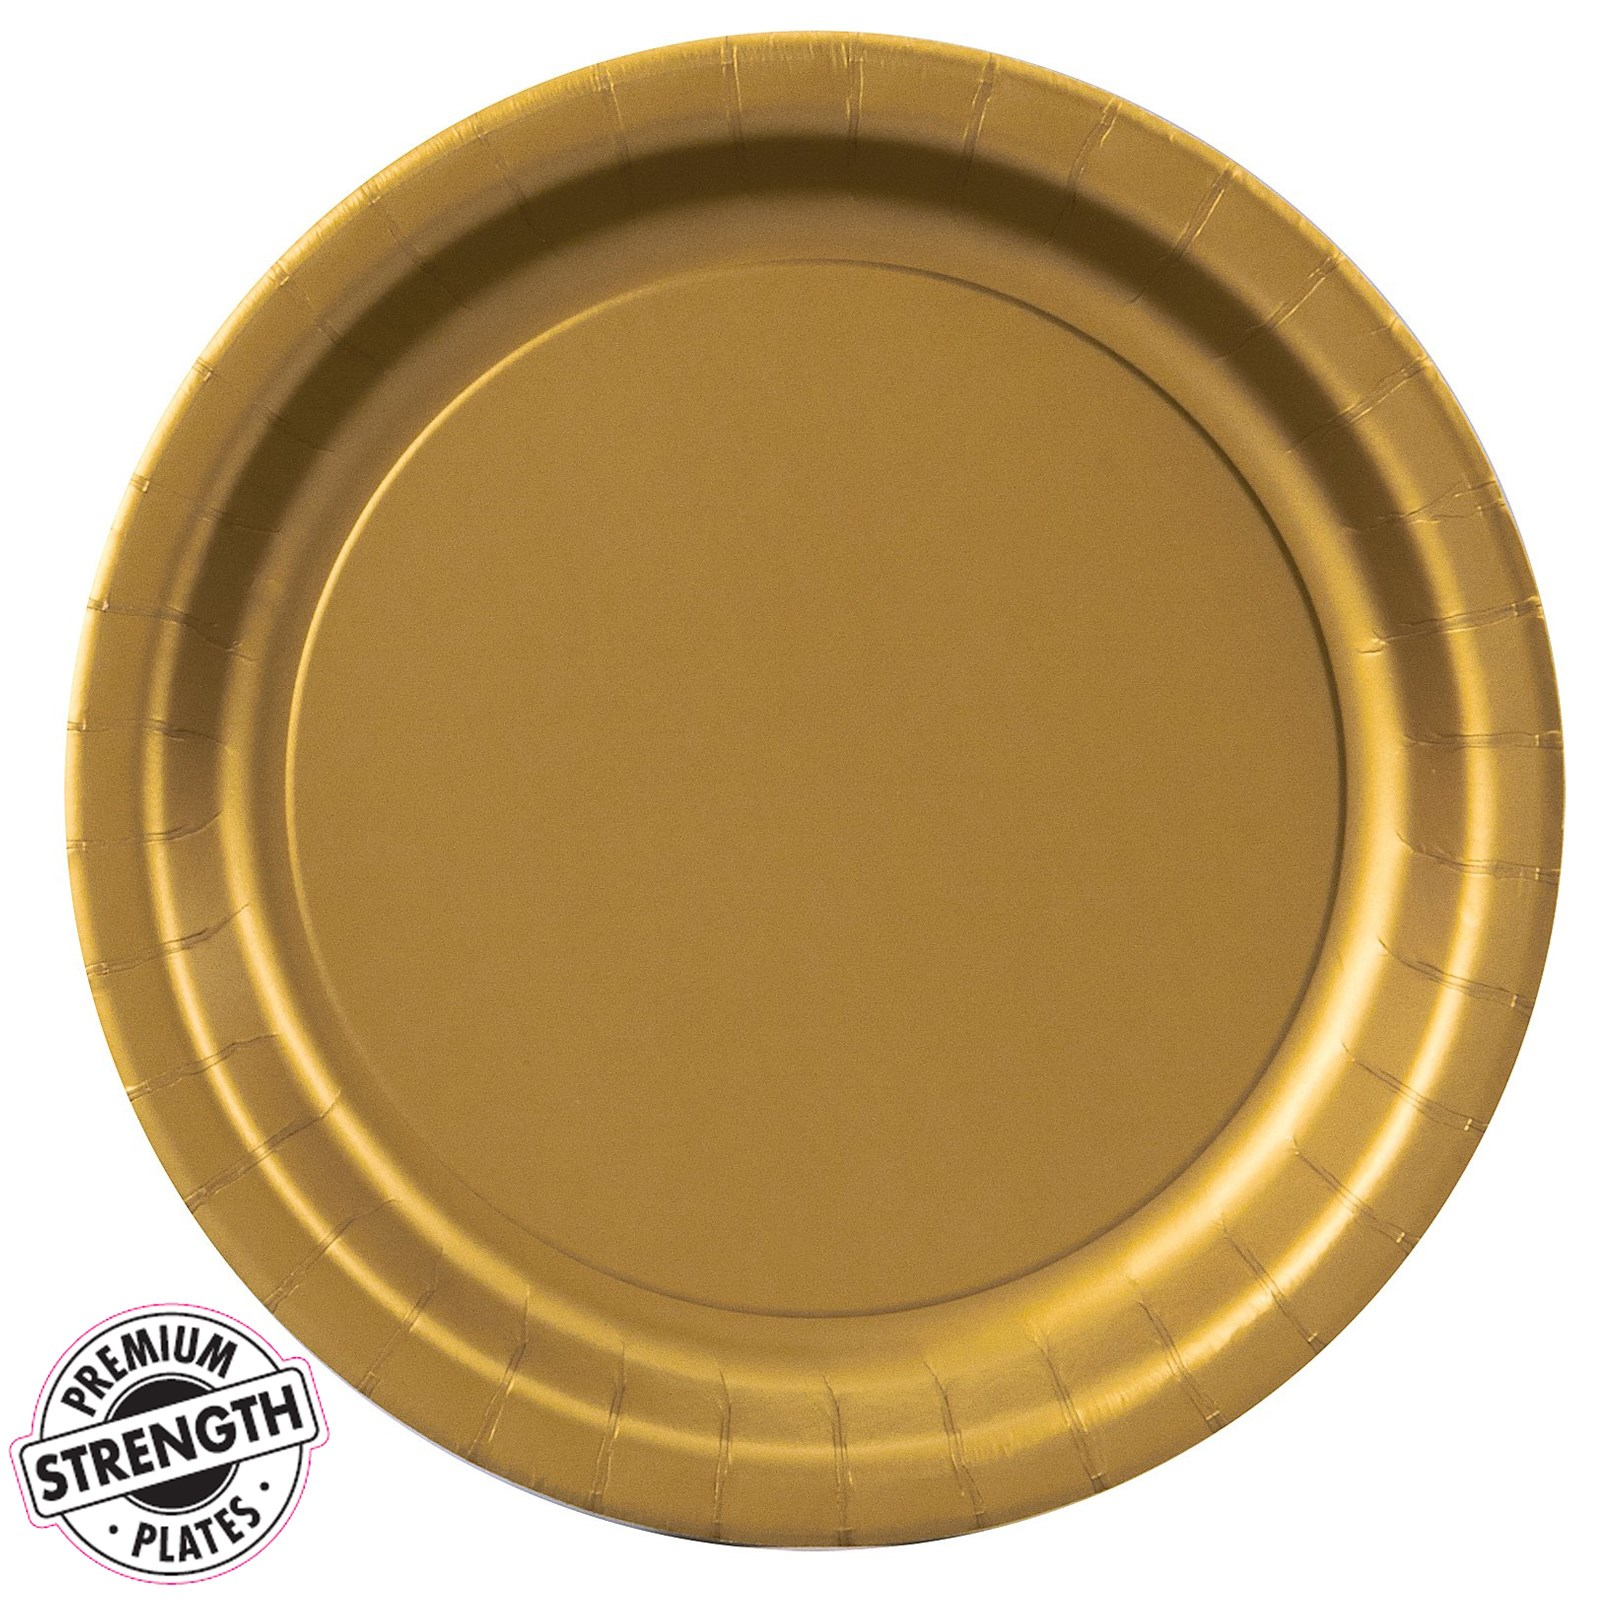 glittering gold gold dinner plates 24 count. Black Bedroom Furniture Sets. Home Design Ideas